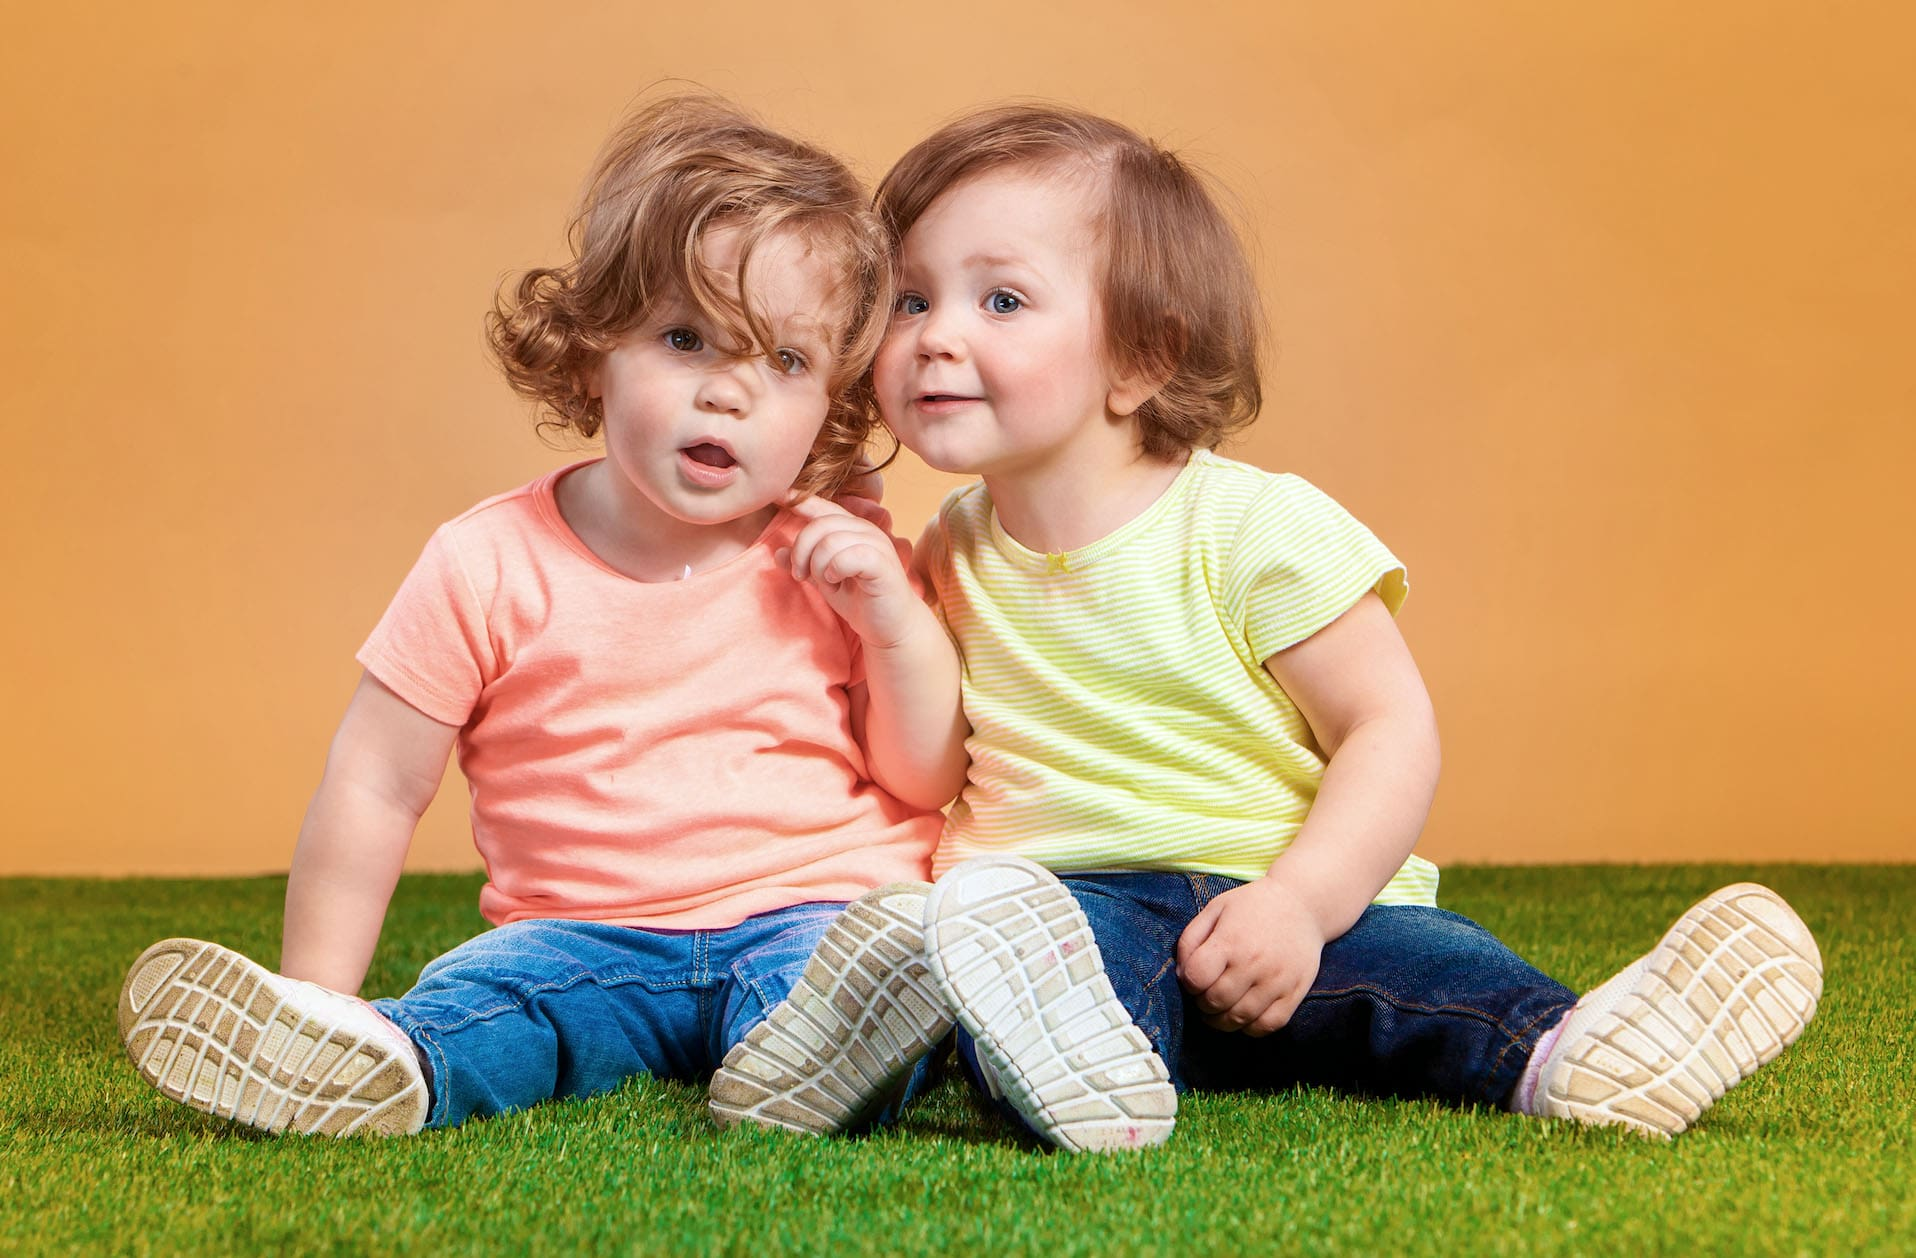 How Common is it to Have Multiple Births After Fertility Treatment?